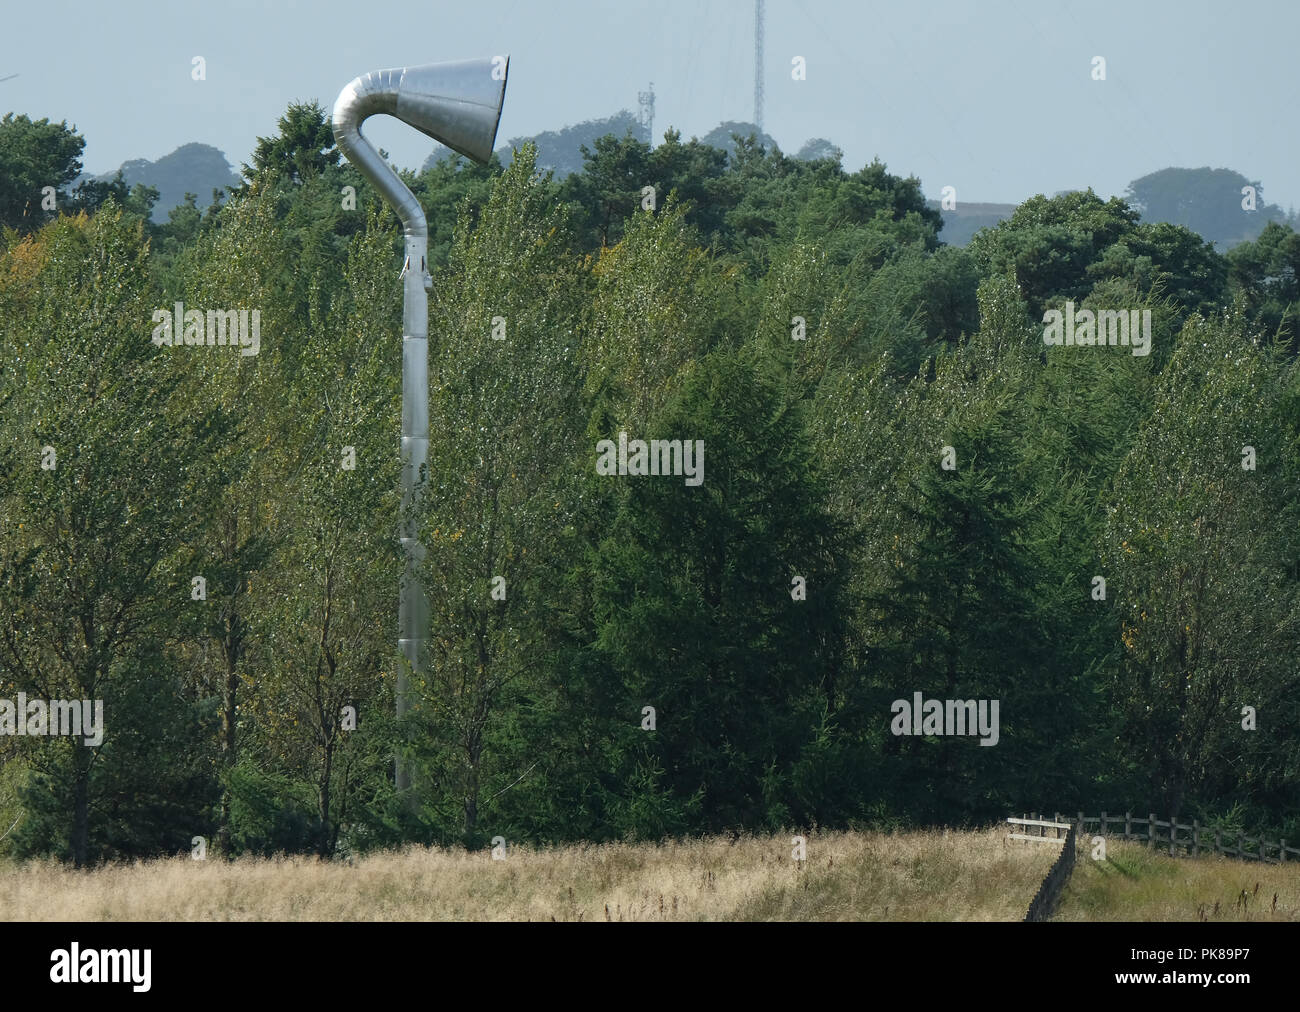 The Horn art installation which overlooks the M8 motorway from its location in Polkemmet Country park, West Lothian. - Stock Image